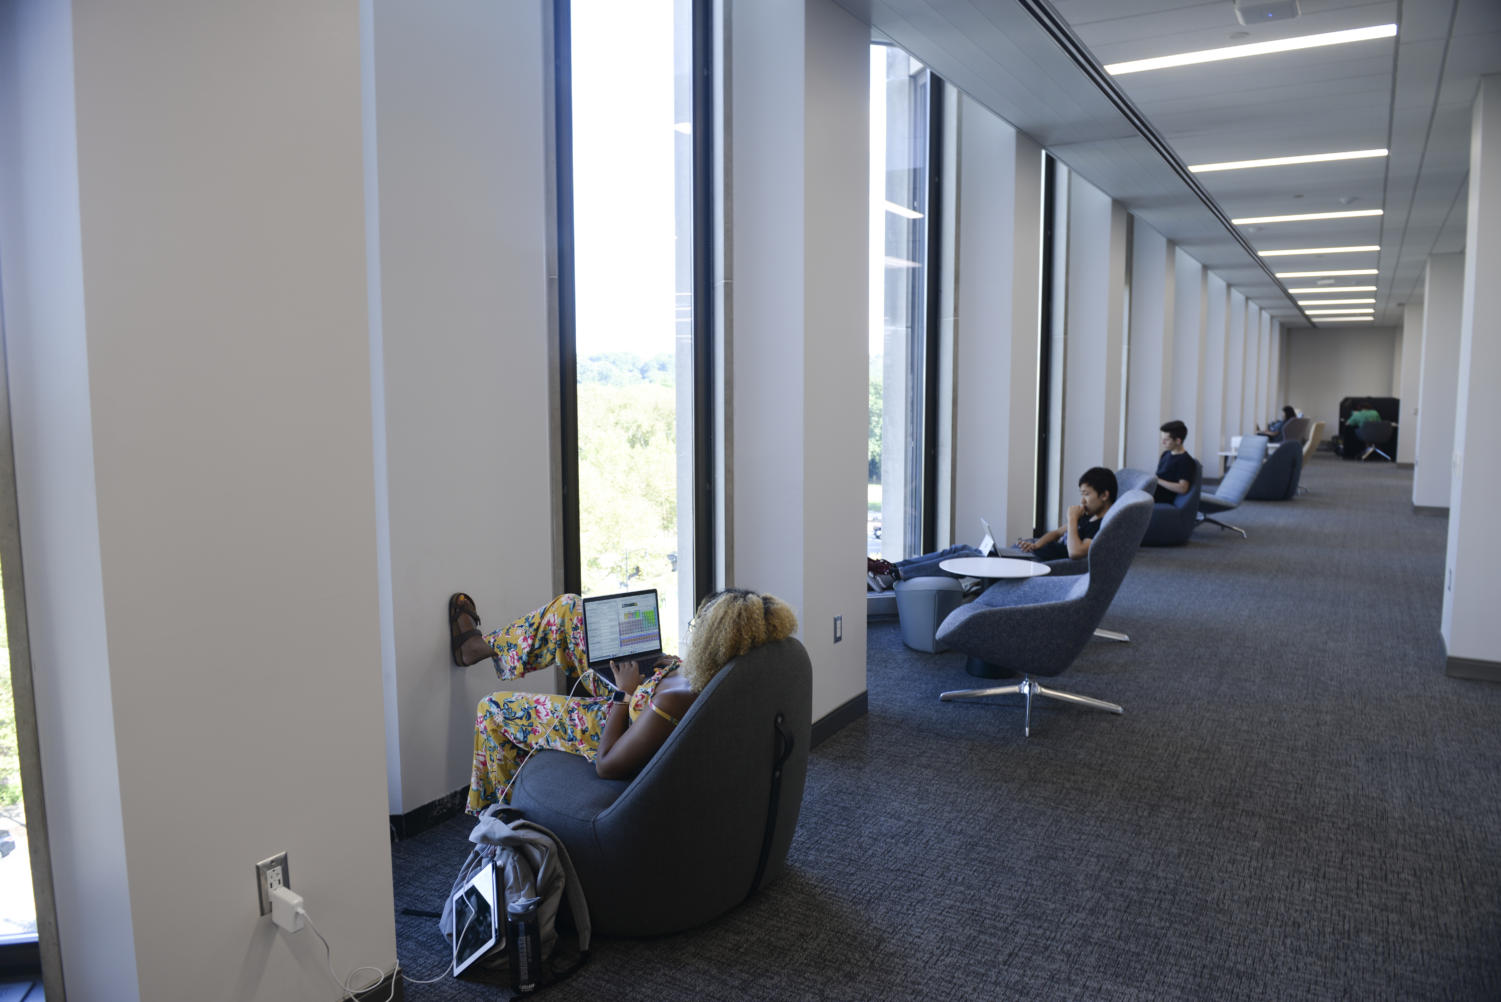 Students study in the renovated fourth floor of Hillman Library.